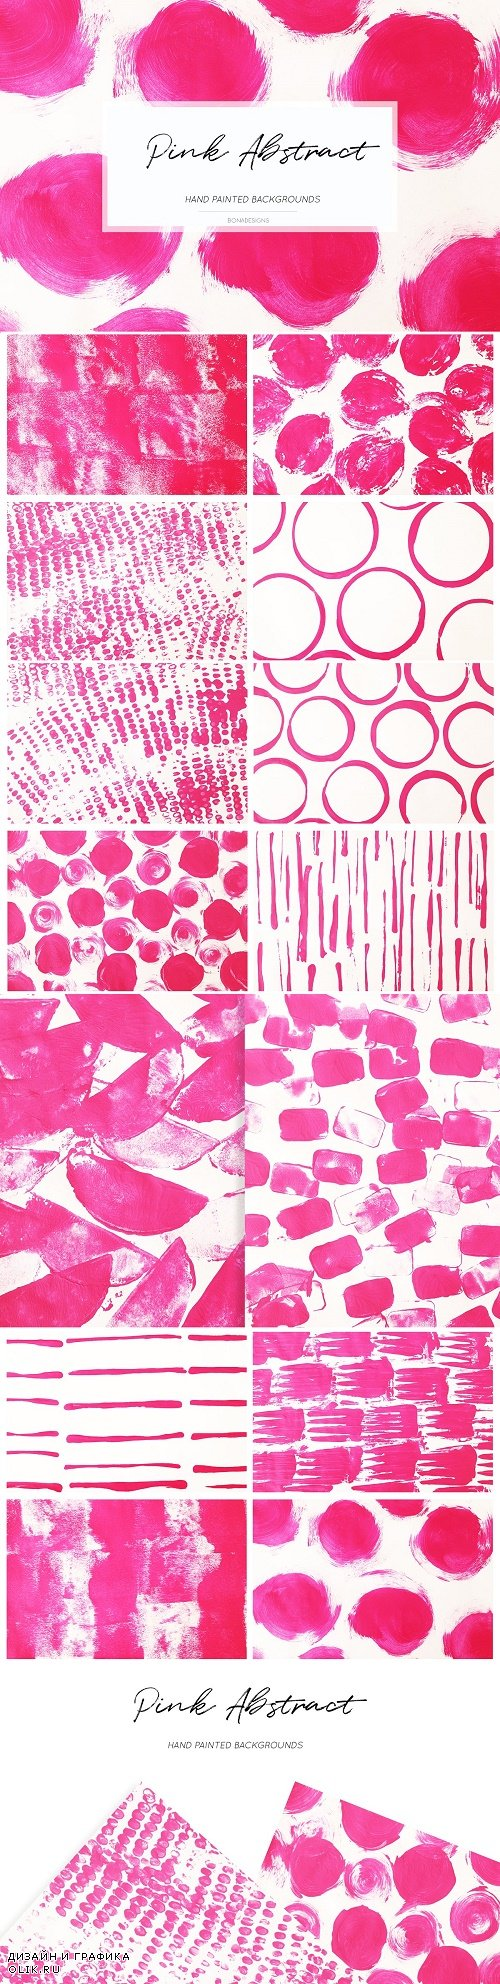 Pink Abstract Backgrounds - 3972474